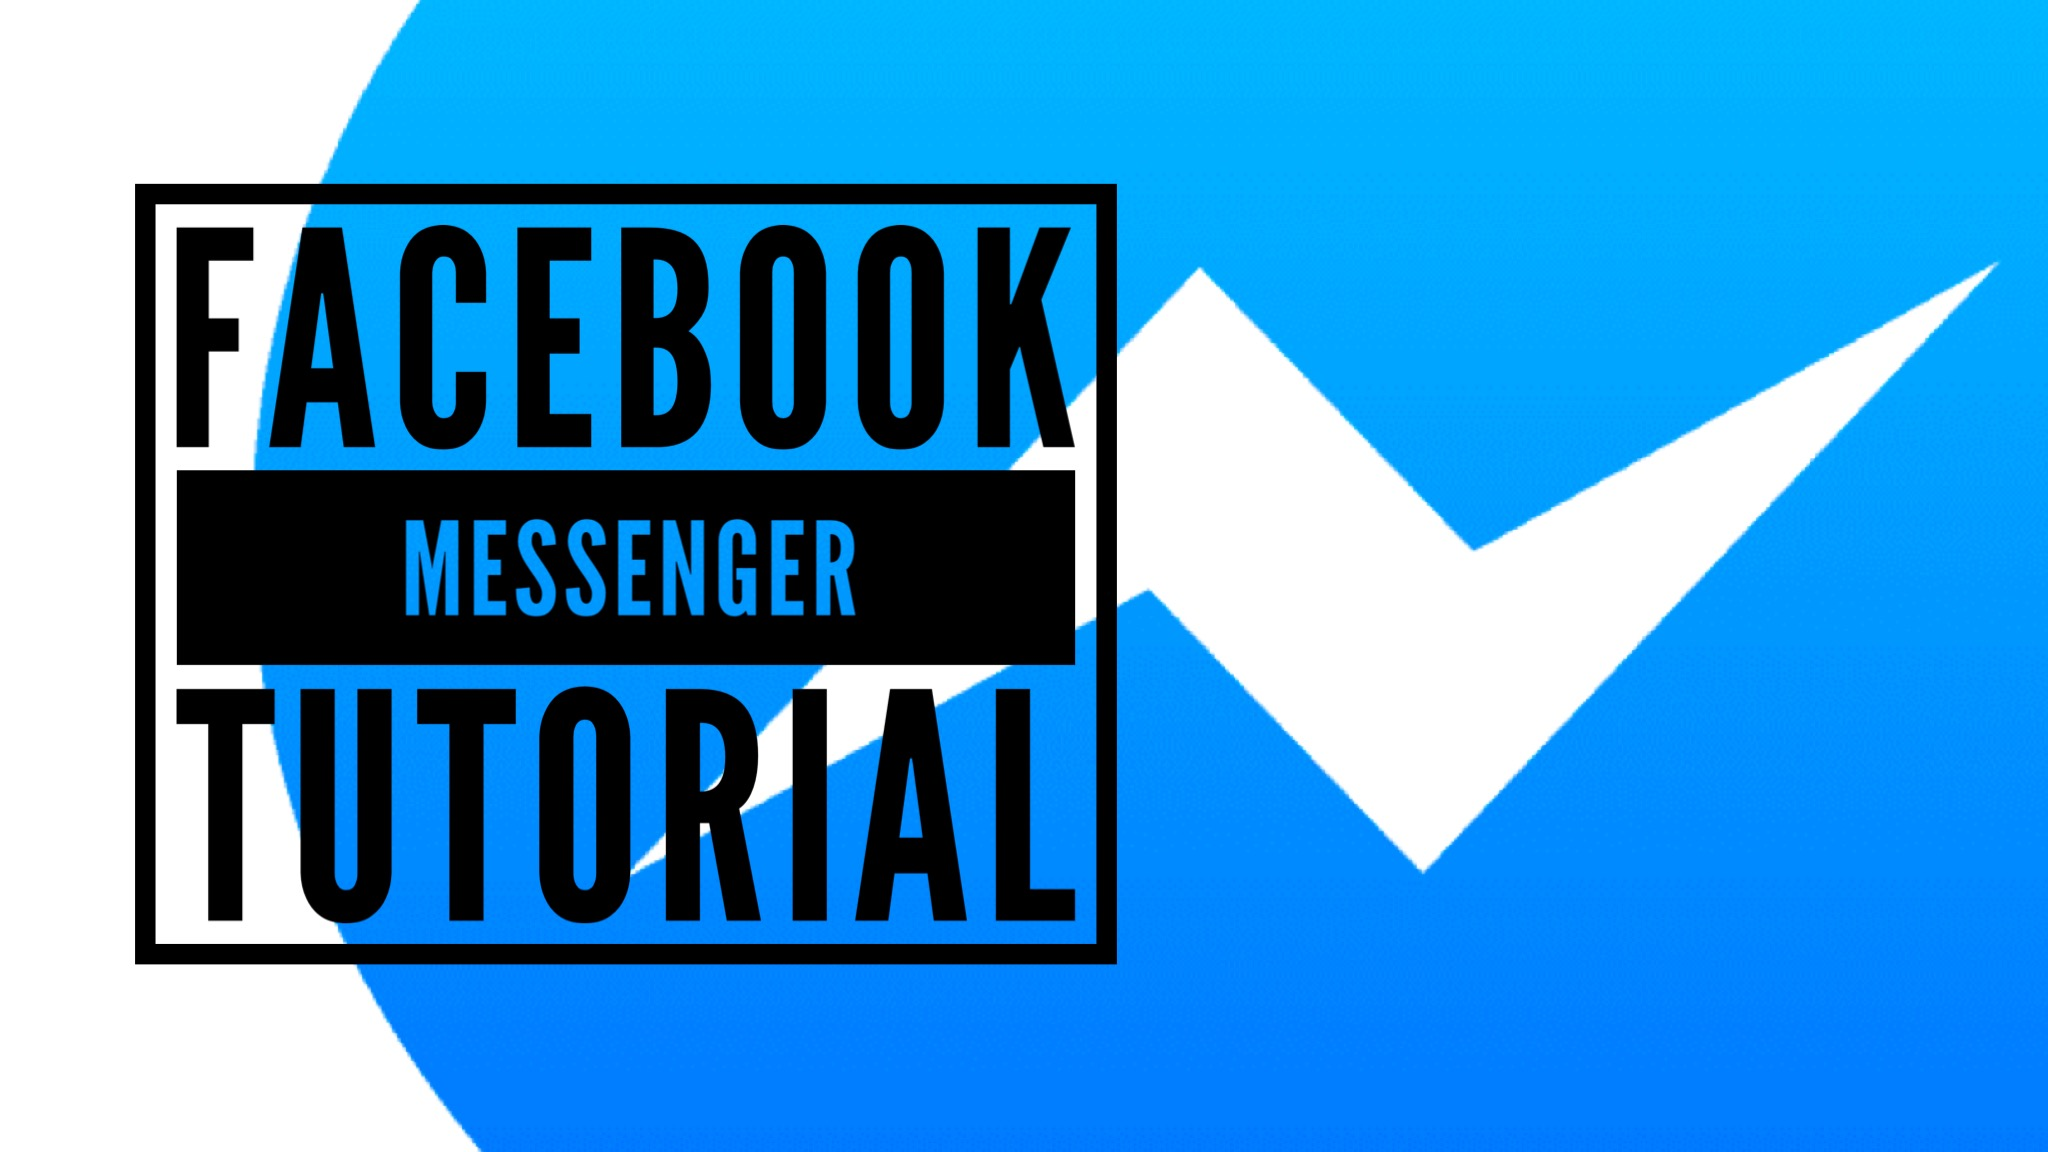 Facebook now gives all new users a privacy tutorial, thanks to.